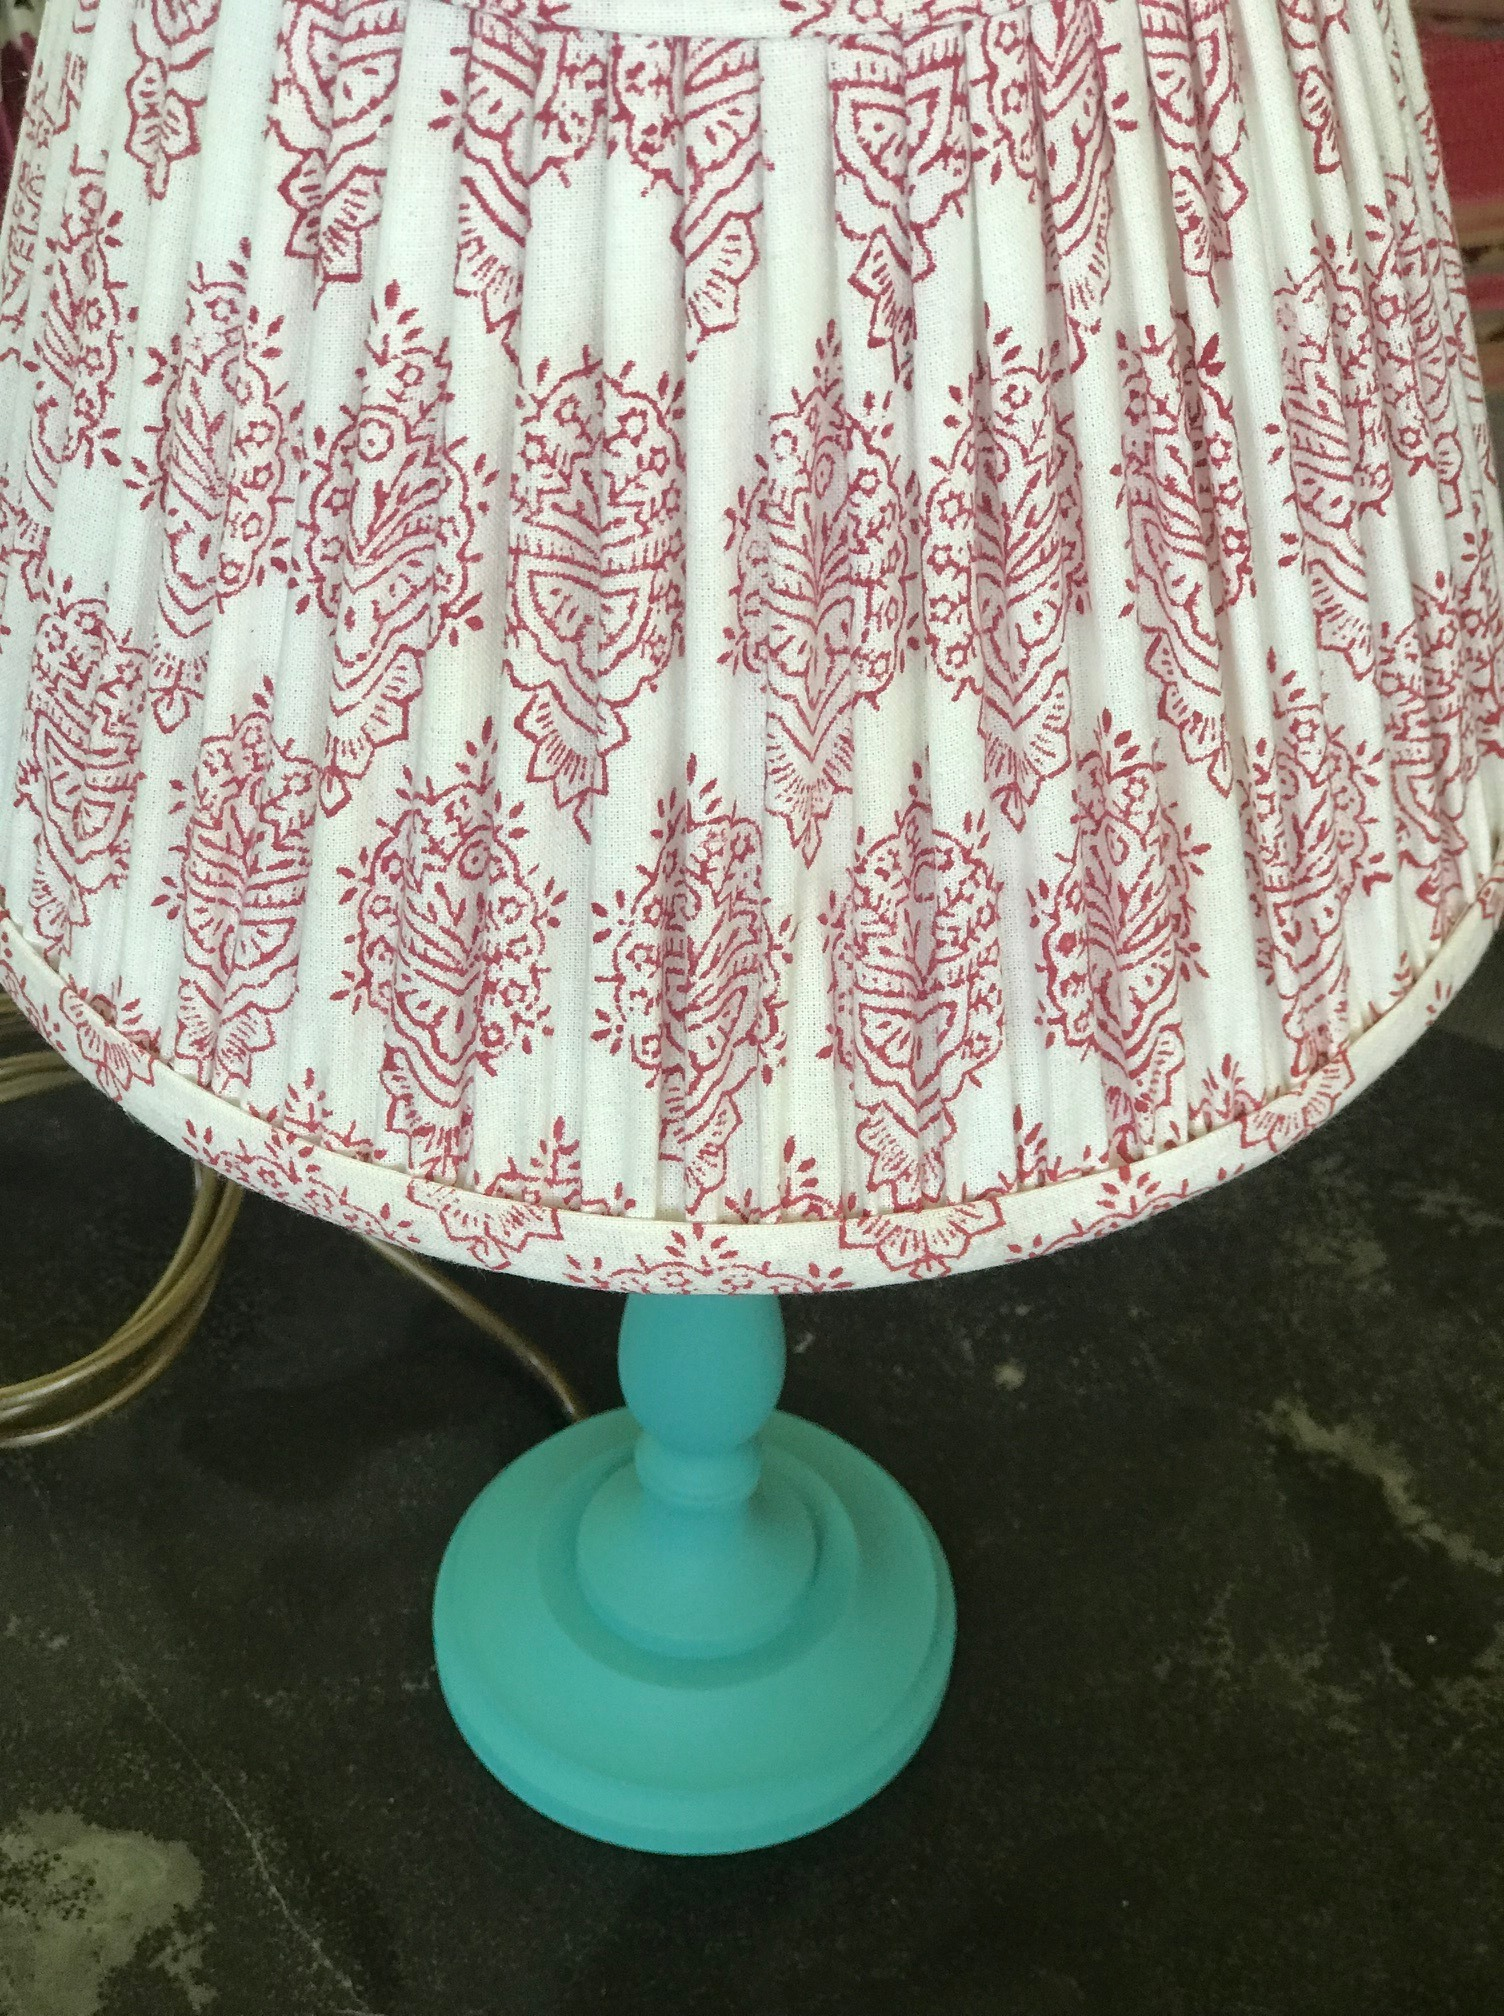 SOLD OUT Red & White Block Print Cotton Lampshades